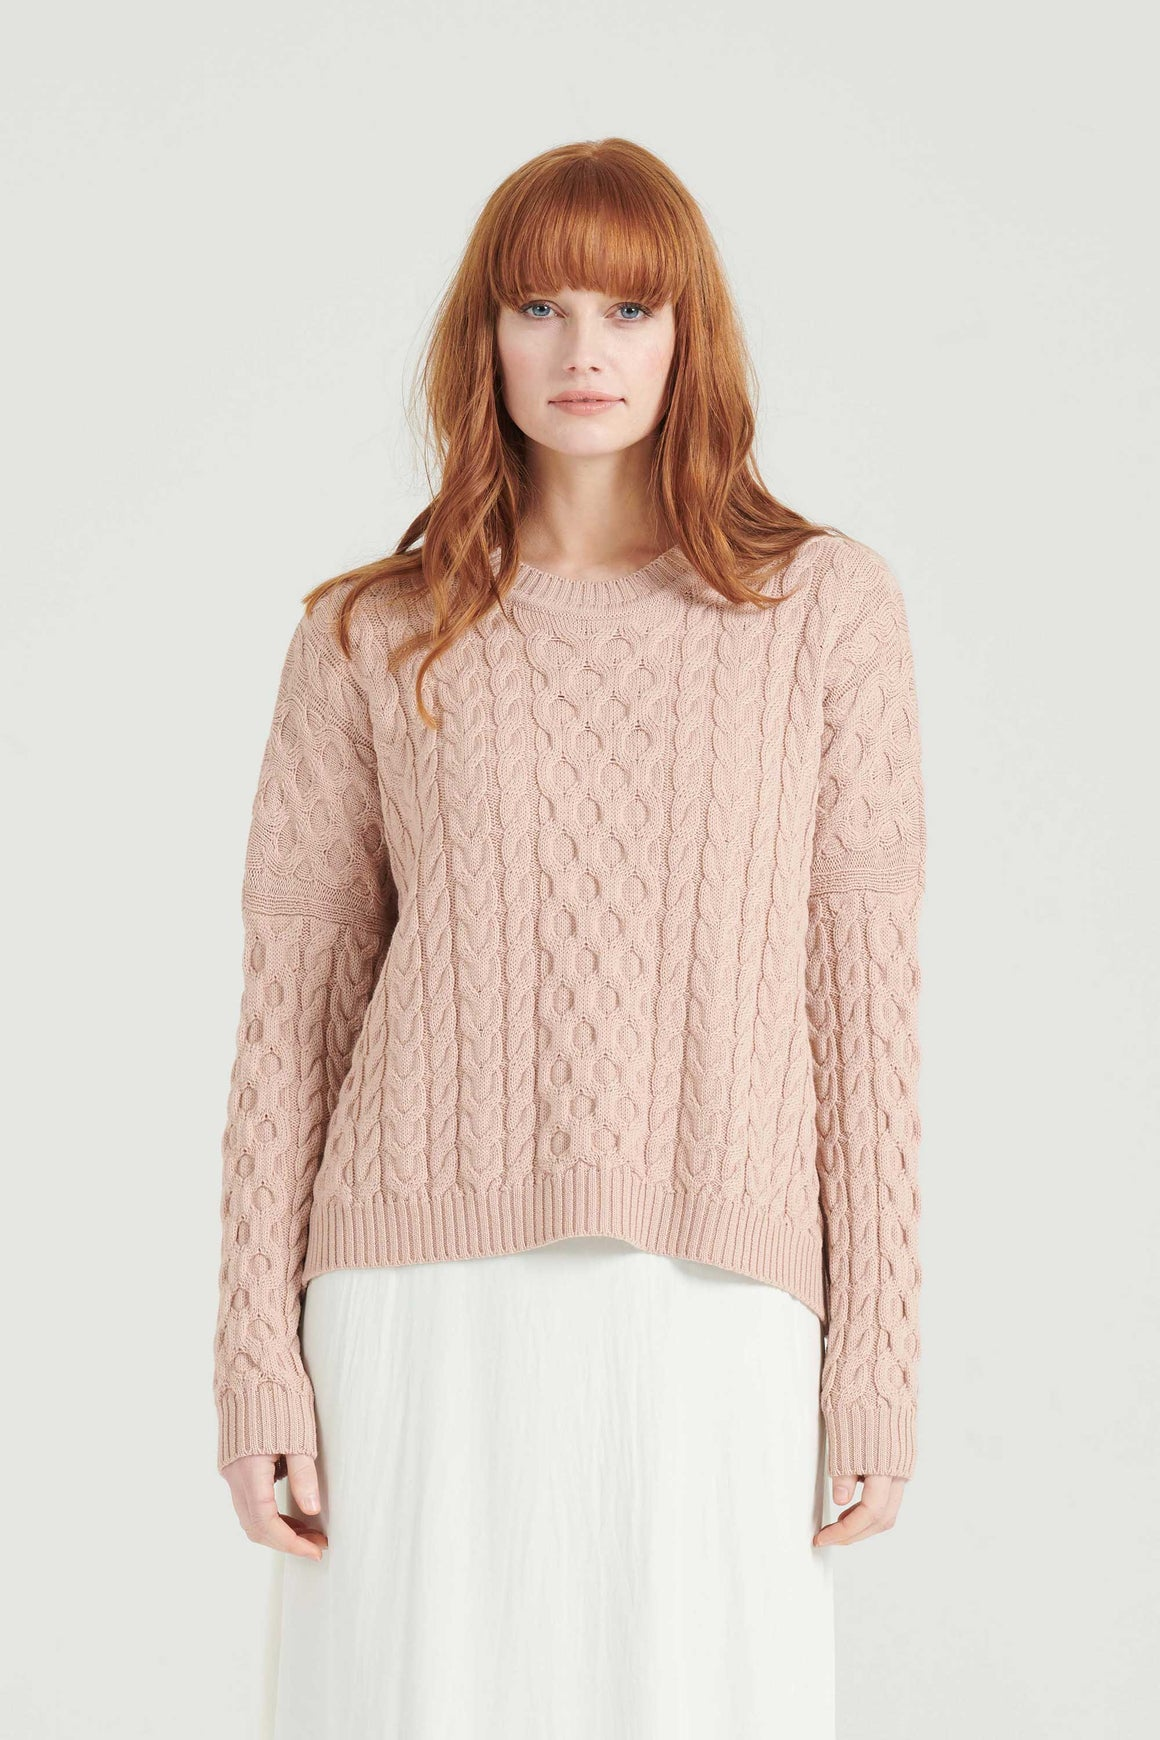 Annie Jumper by From Knitwear | Shop online NZ | NZ Made knitwear